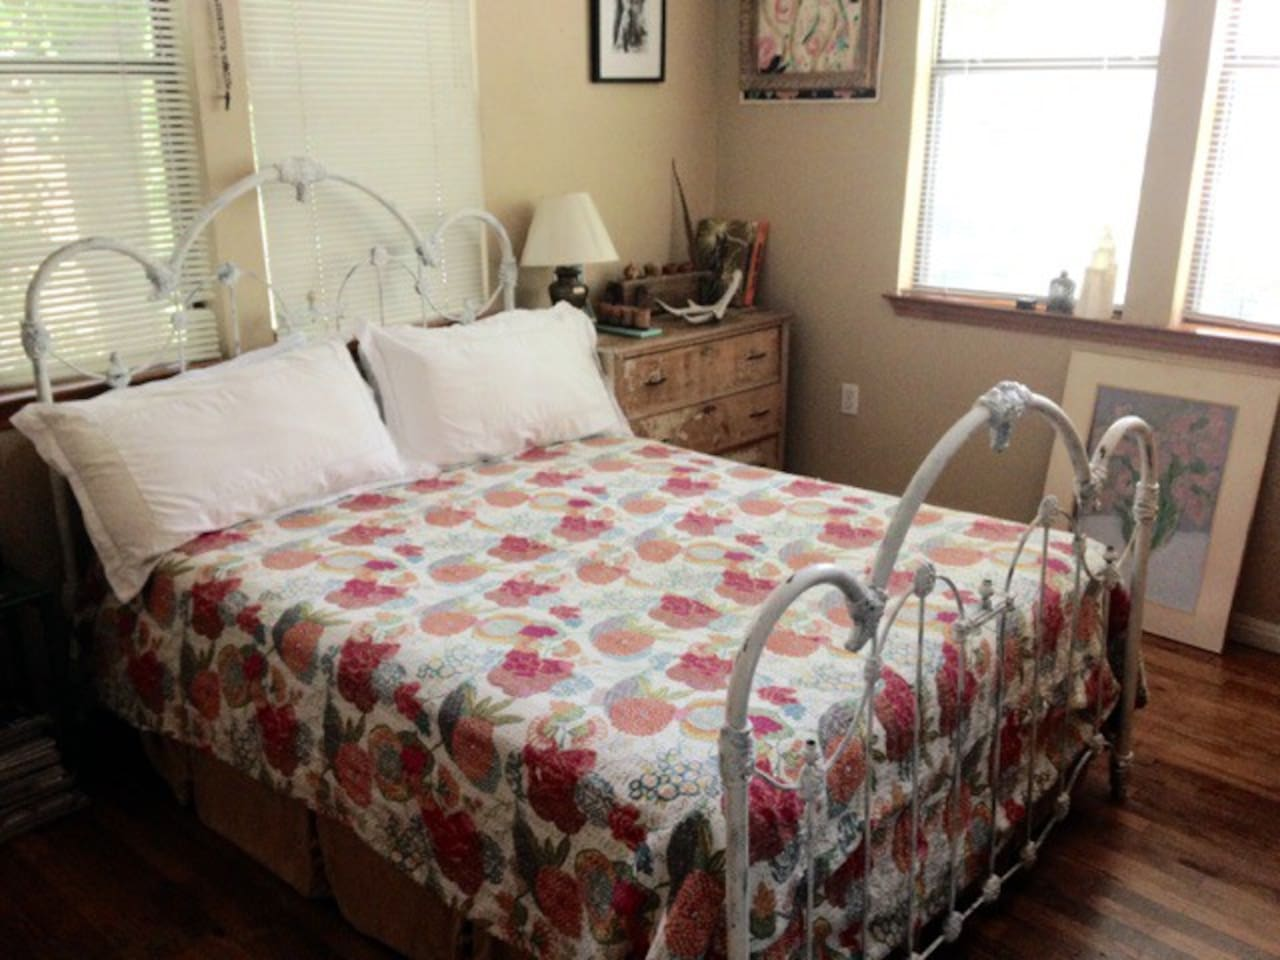 Super cozy queen size bed!